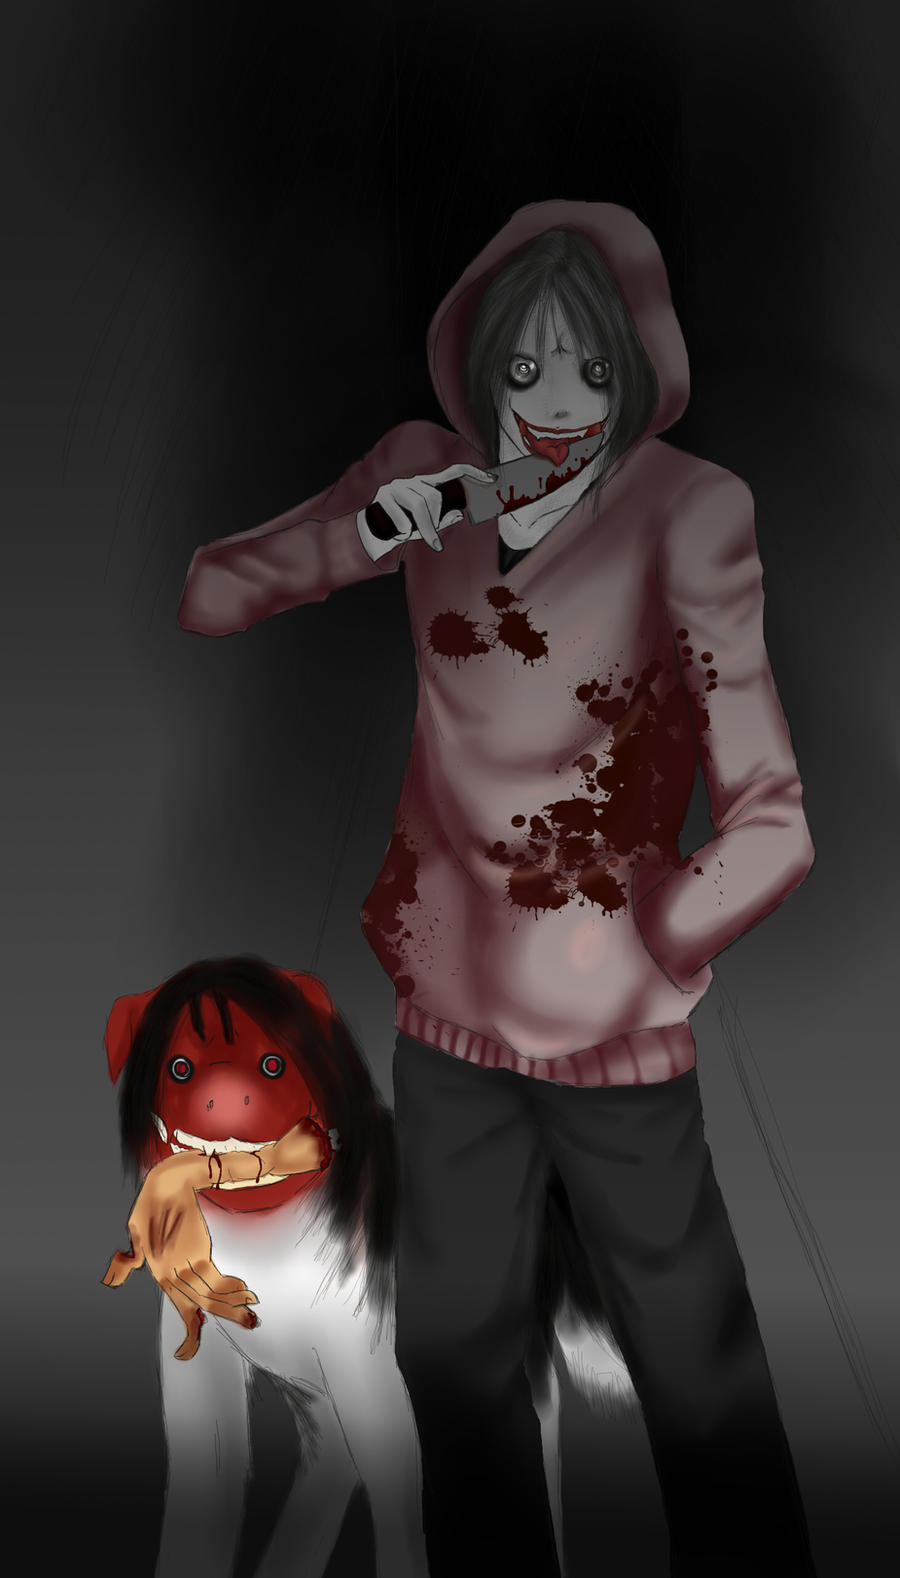 hello jeff the killer and smile dog by yukino5241 on